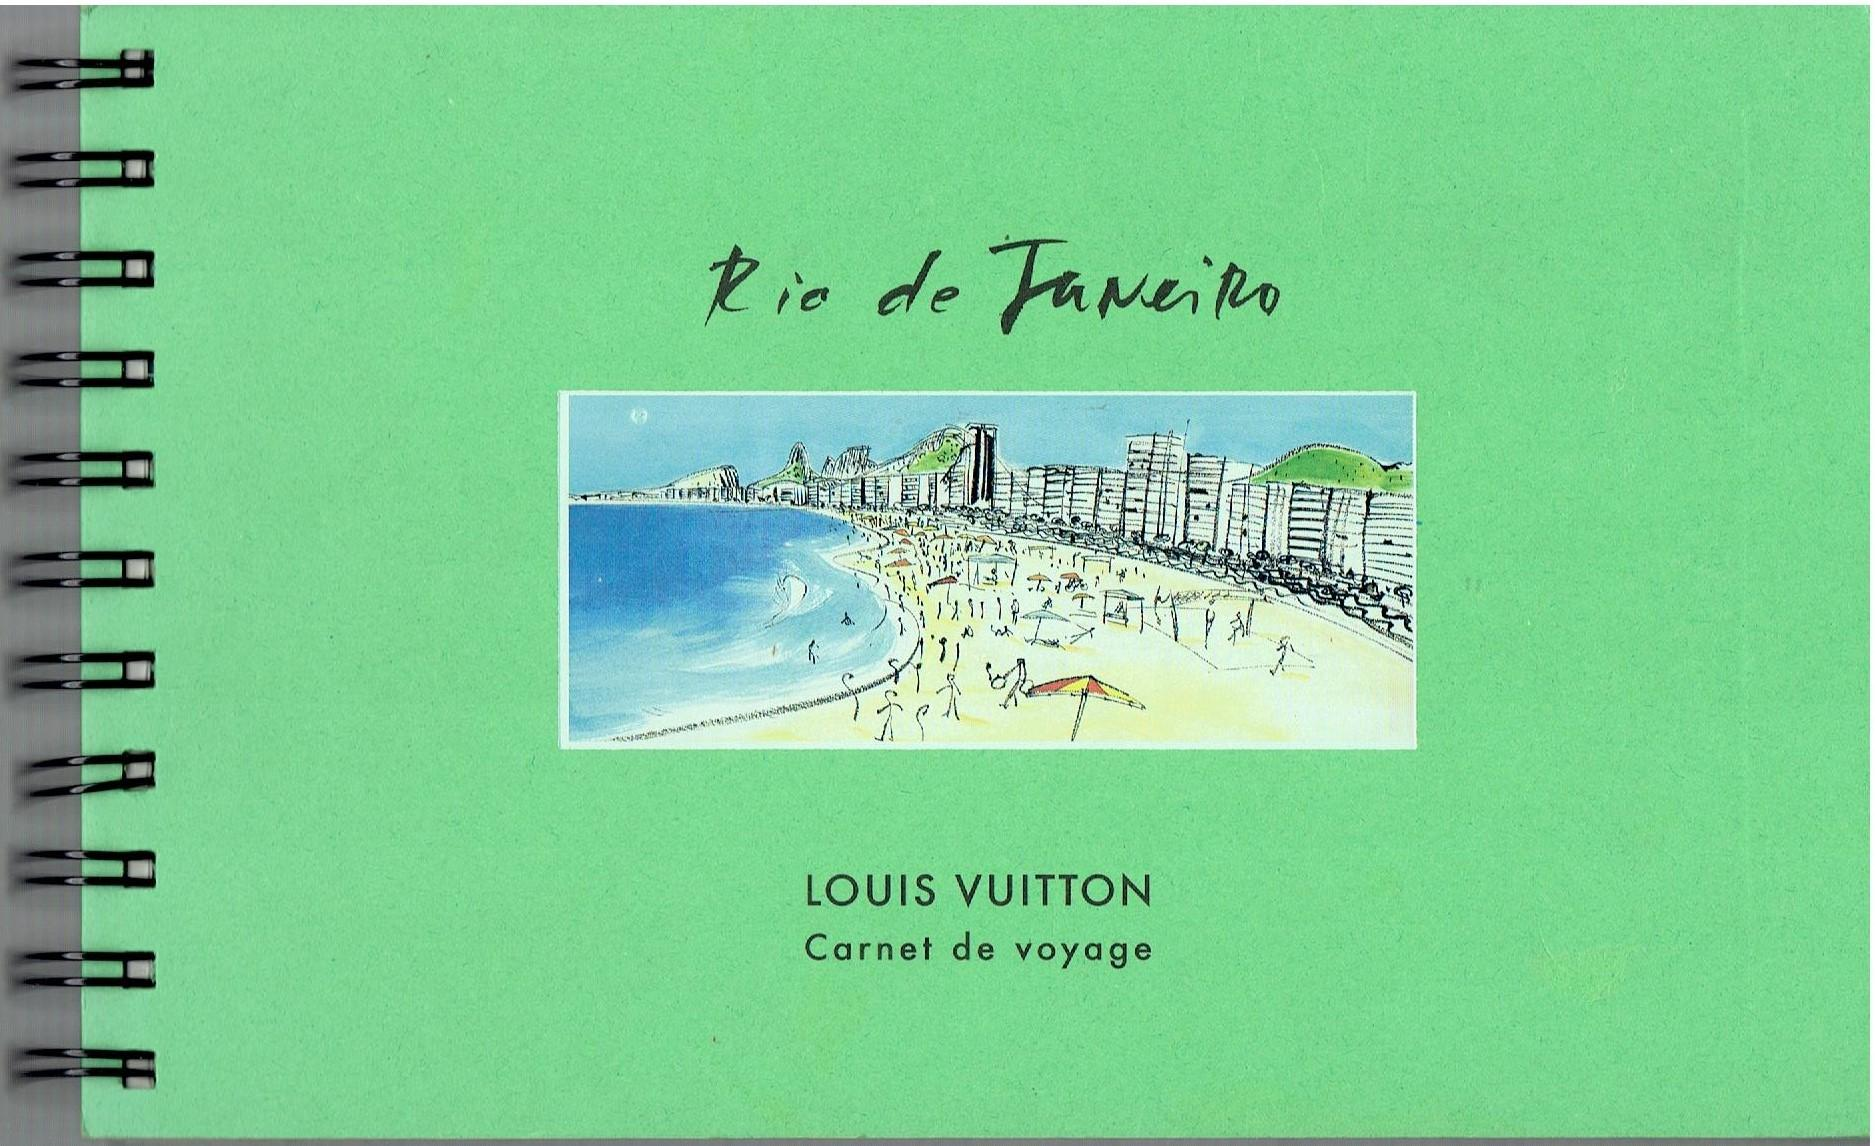 Rio de Janeiro - Louis Vuitton Carnet de Voyage Louis Vuitton Very Good Softcover One in a series of special limited publications created by Louis Vuitton that contain sketches, drawings and paintings of a particular place in the wo